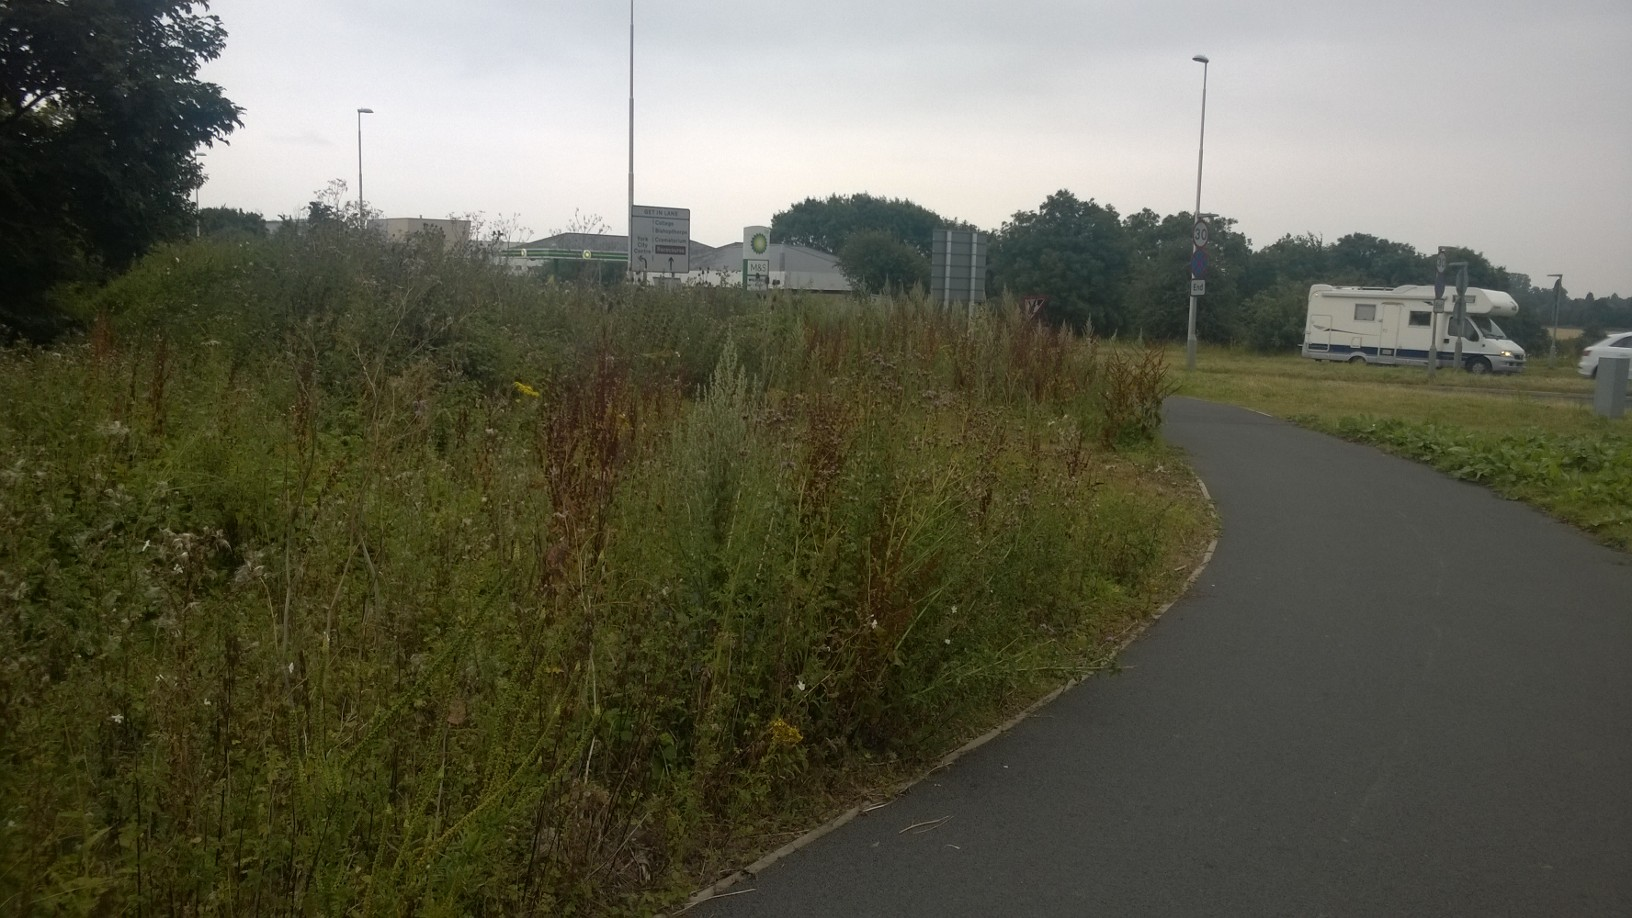 Exit from the Park & Ride site